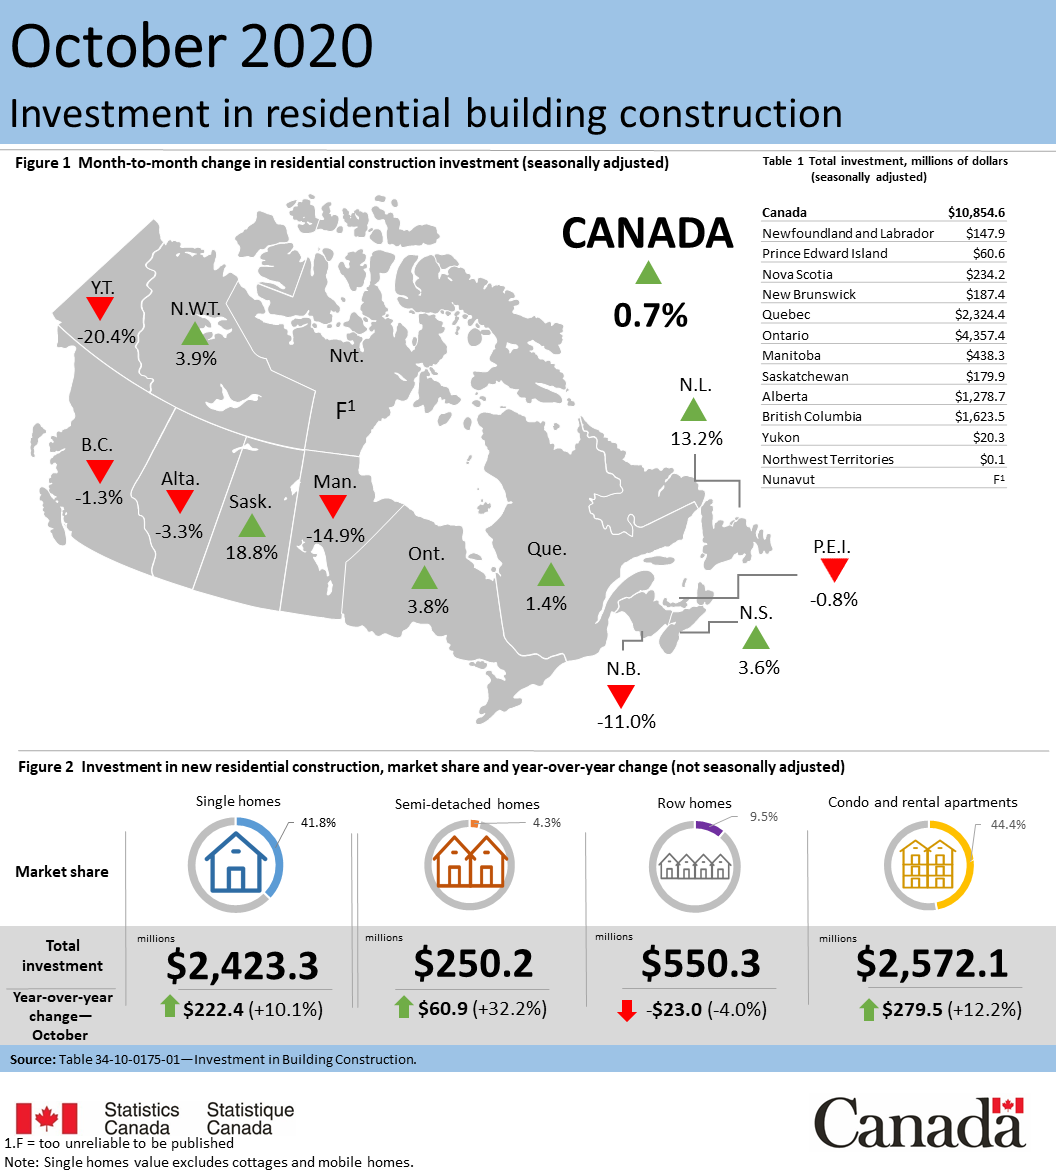 Thumbnail for Infographic 2: Investment in residential building construction, October 2020